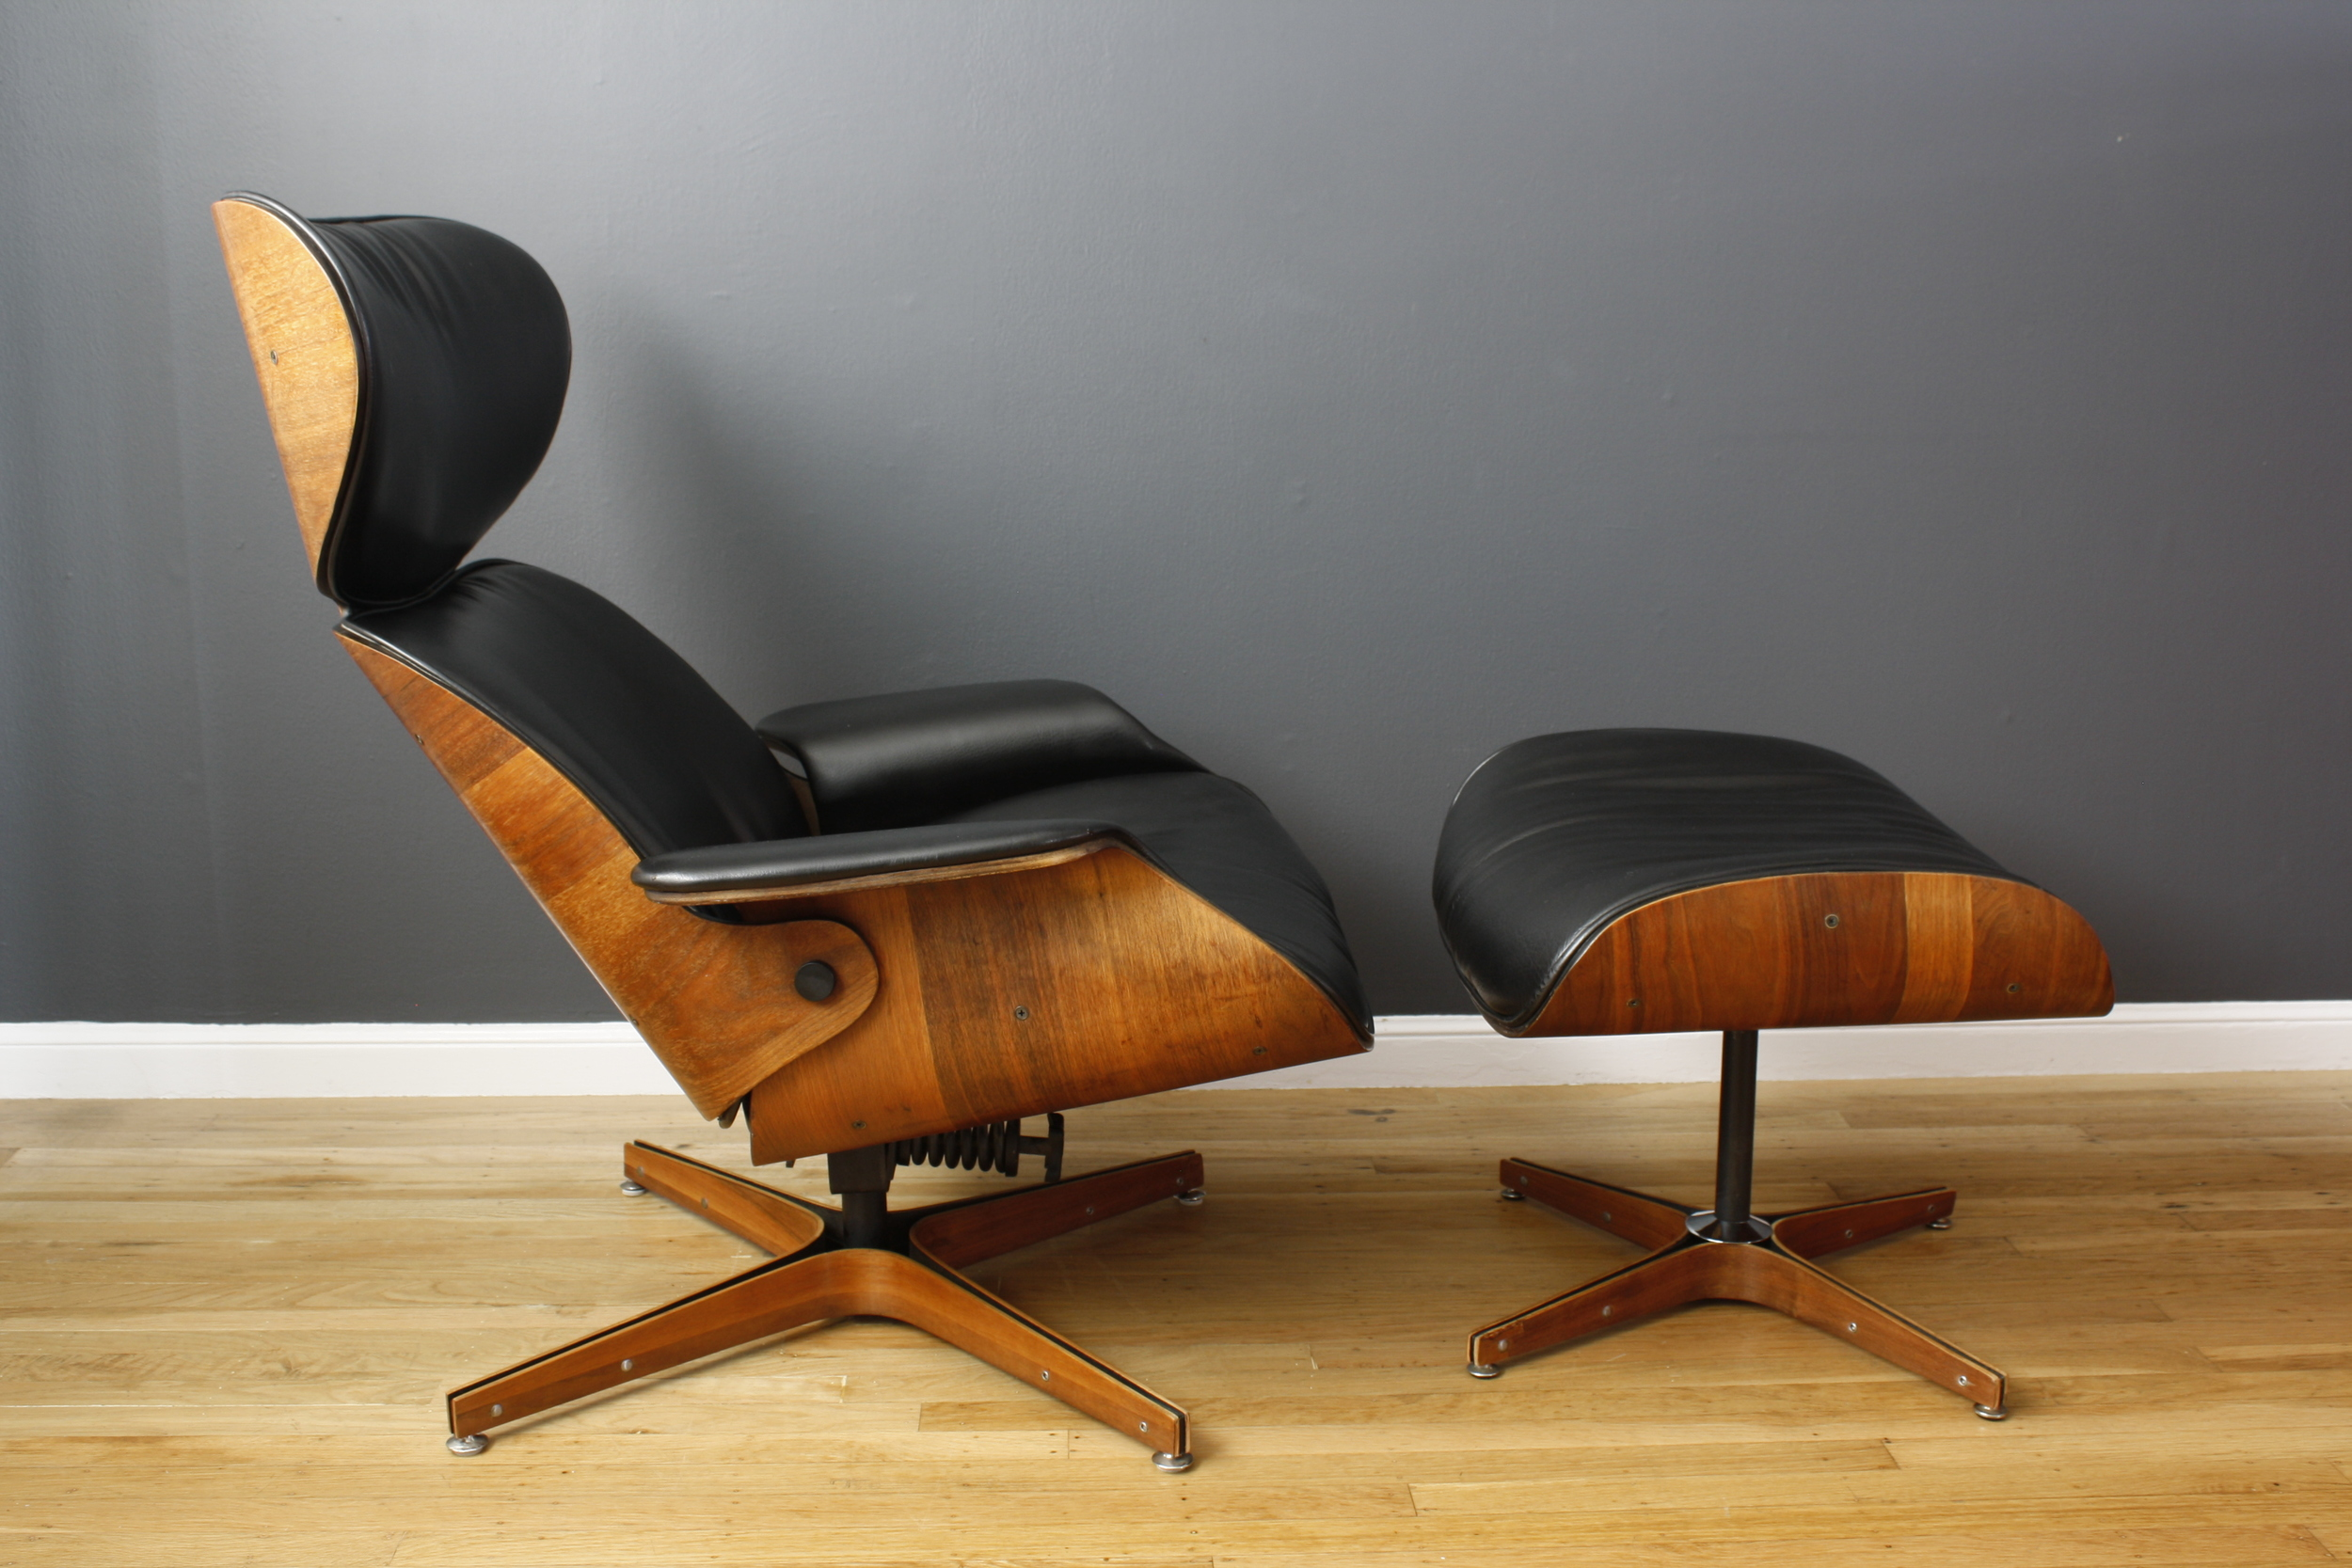 Copy of Vintage Mid-Century Plycraft Recliner and Ottoman